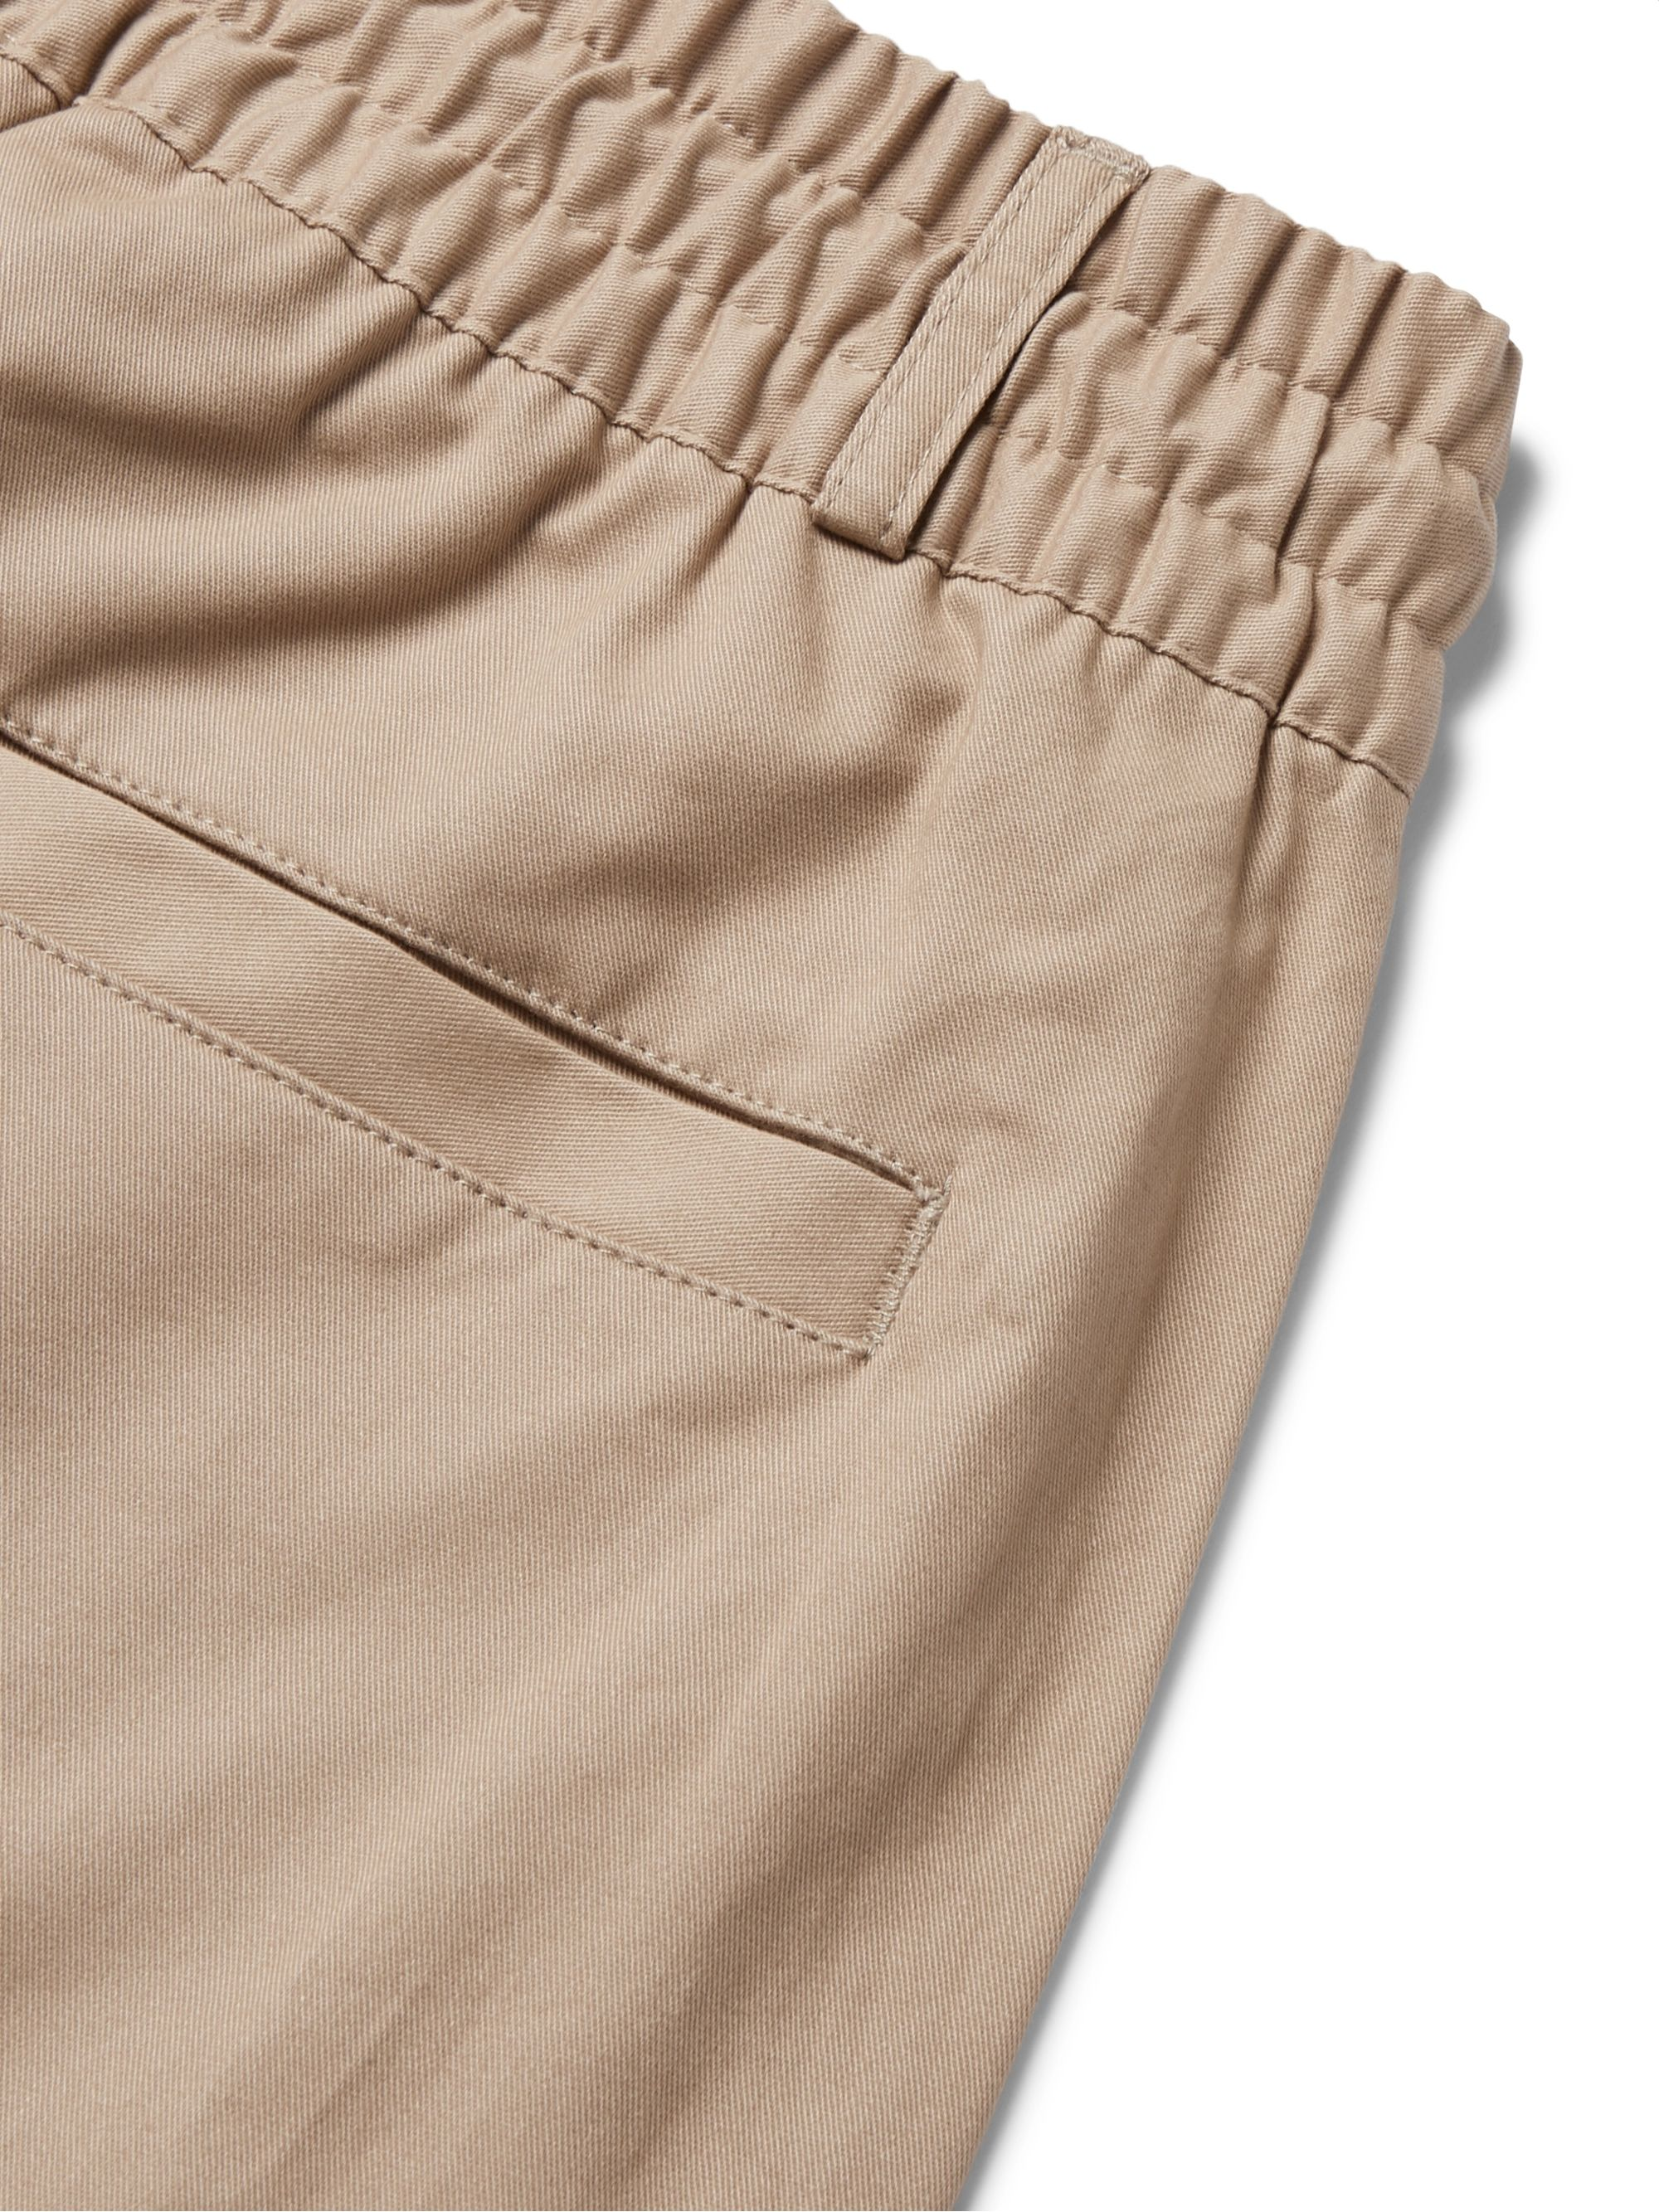 Beige Adiplore Appliquéd Cotton-twill Drawstring Cargo Shorts | Adidas Originals